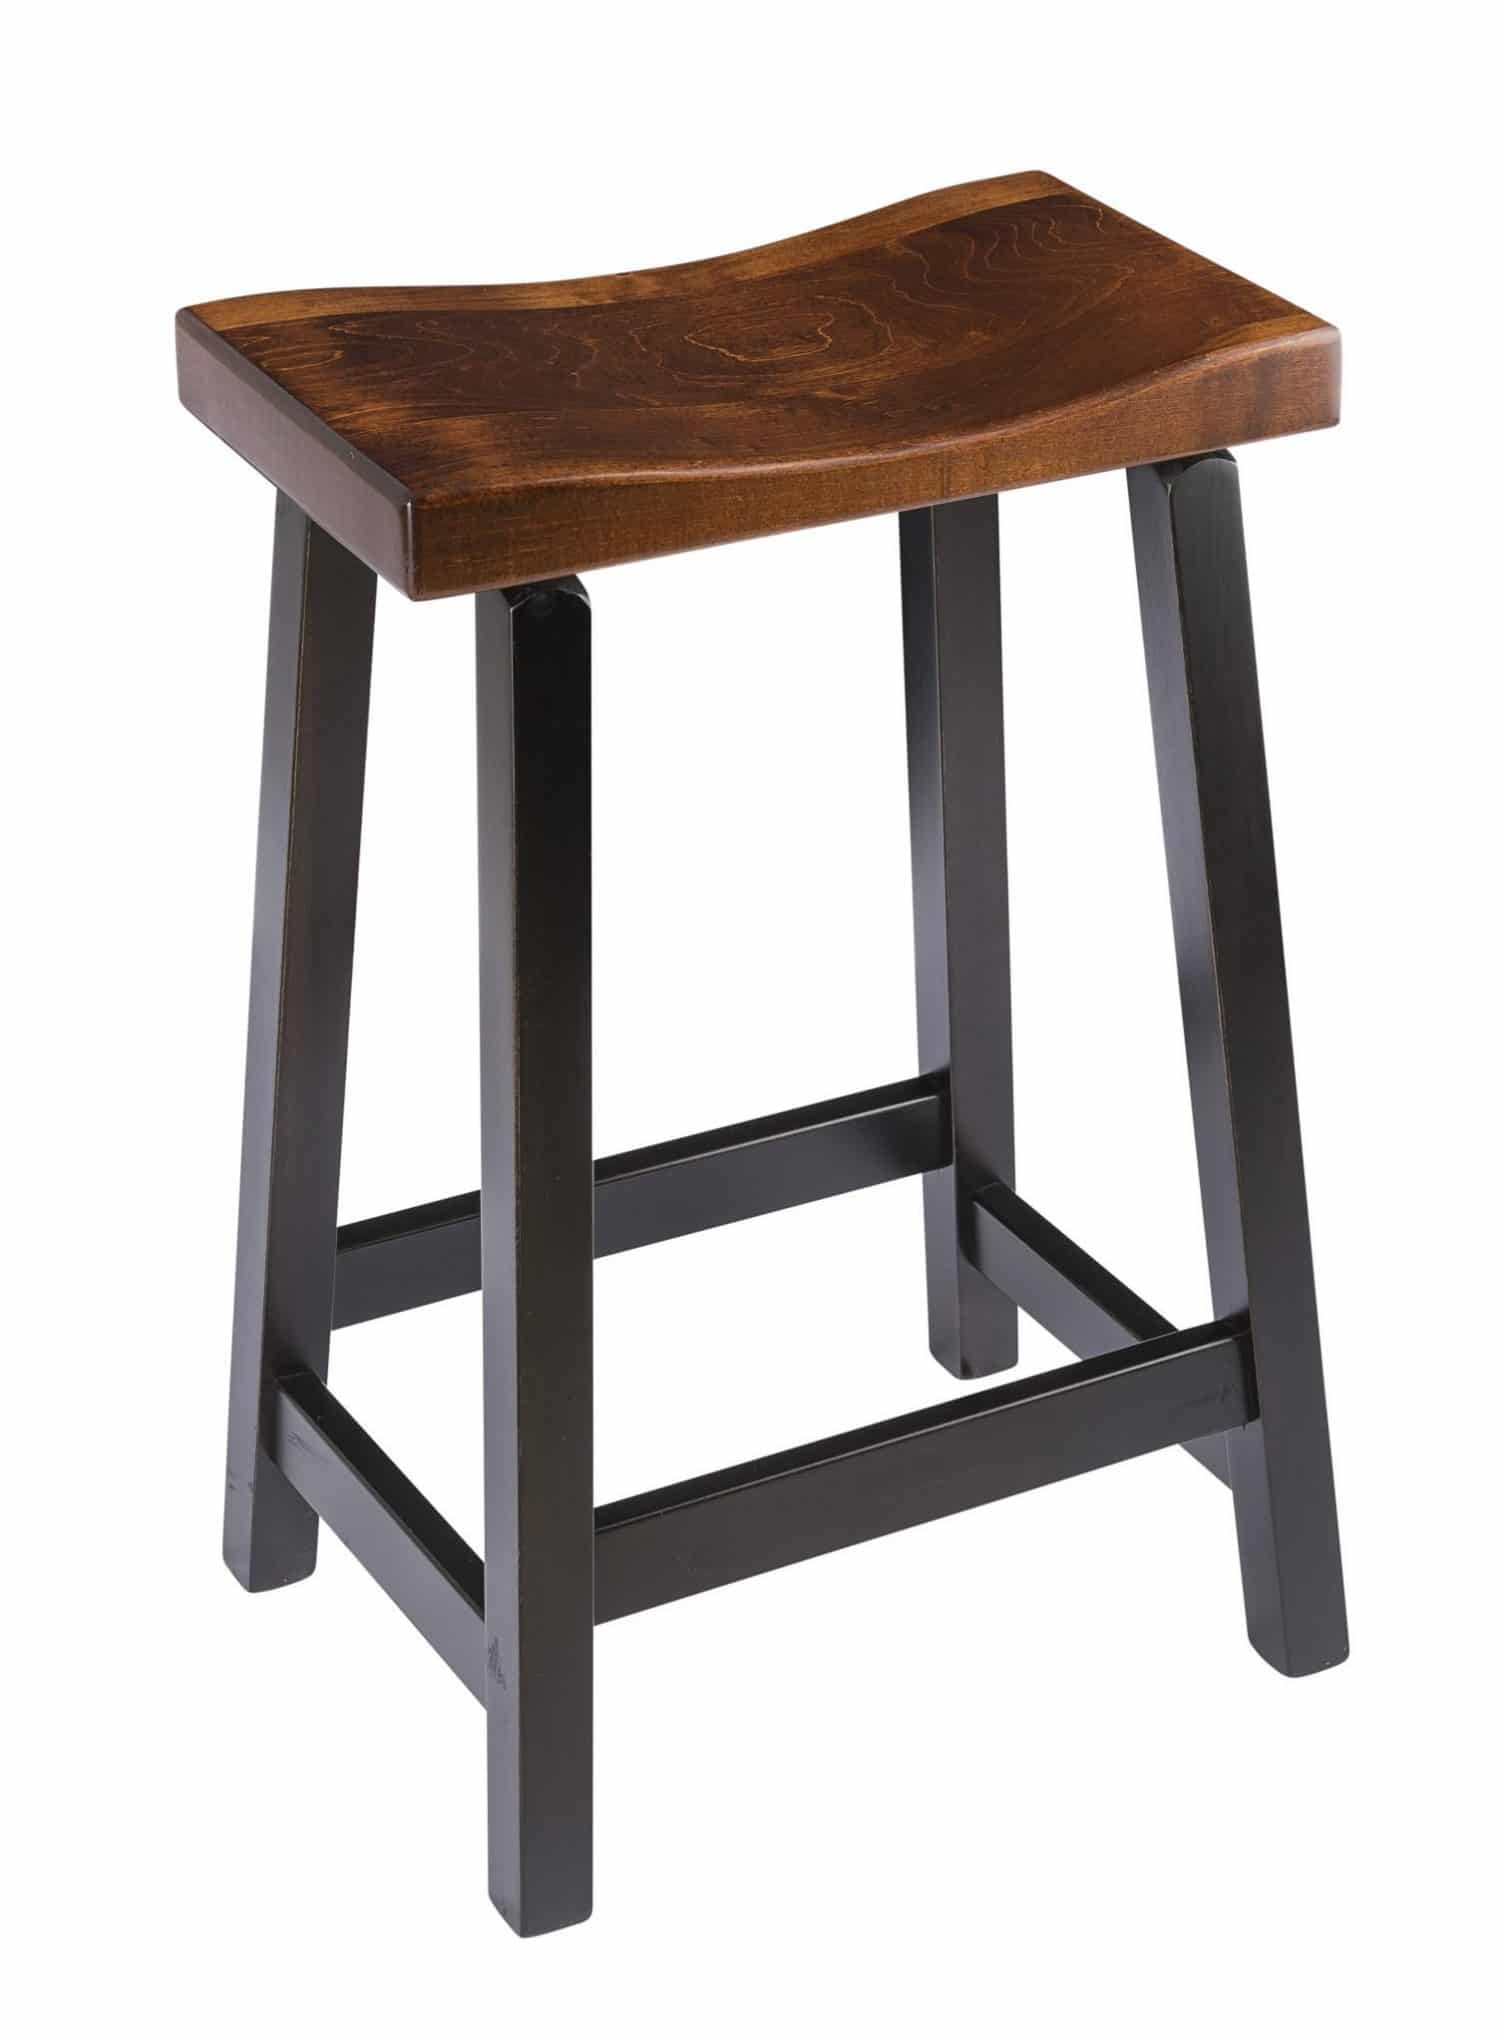 Saddle Bar Stool In Maple Wood The Amish Furniture Company